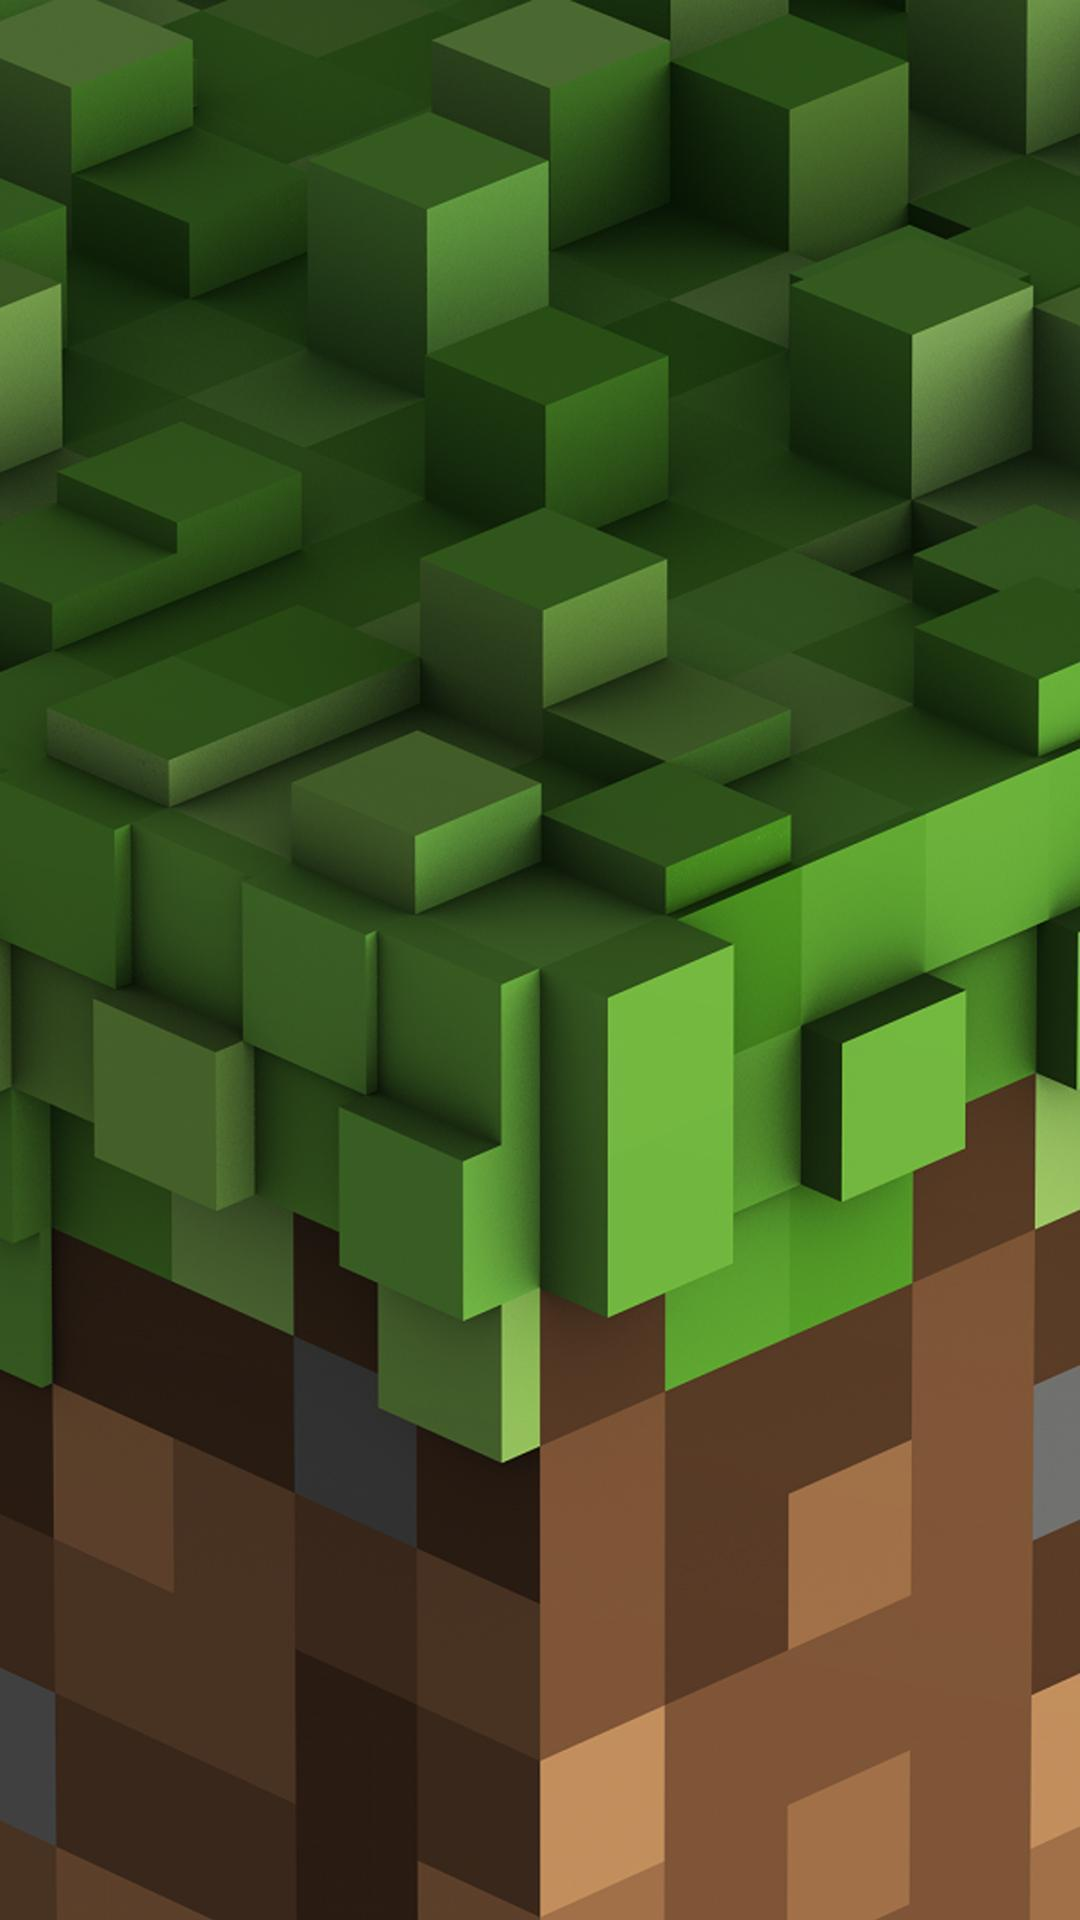 Minecraft Wallpapers Hd For Android Apk Download